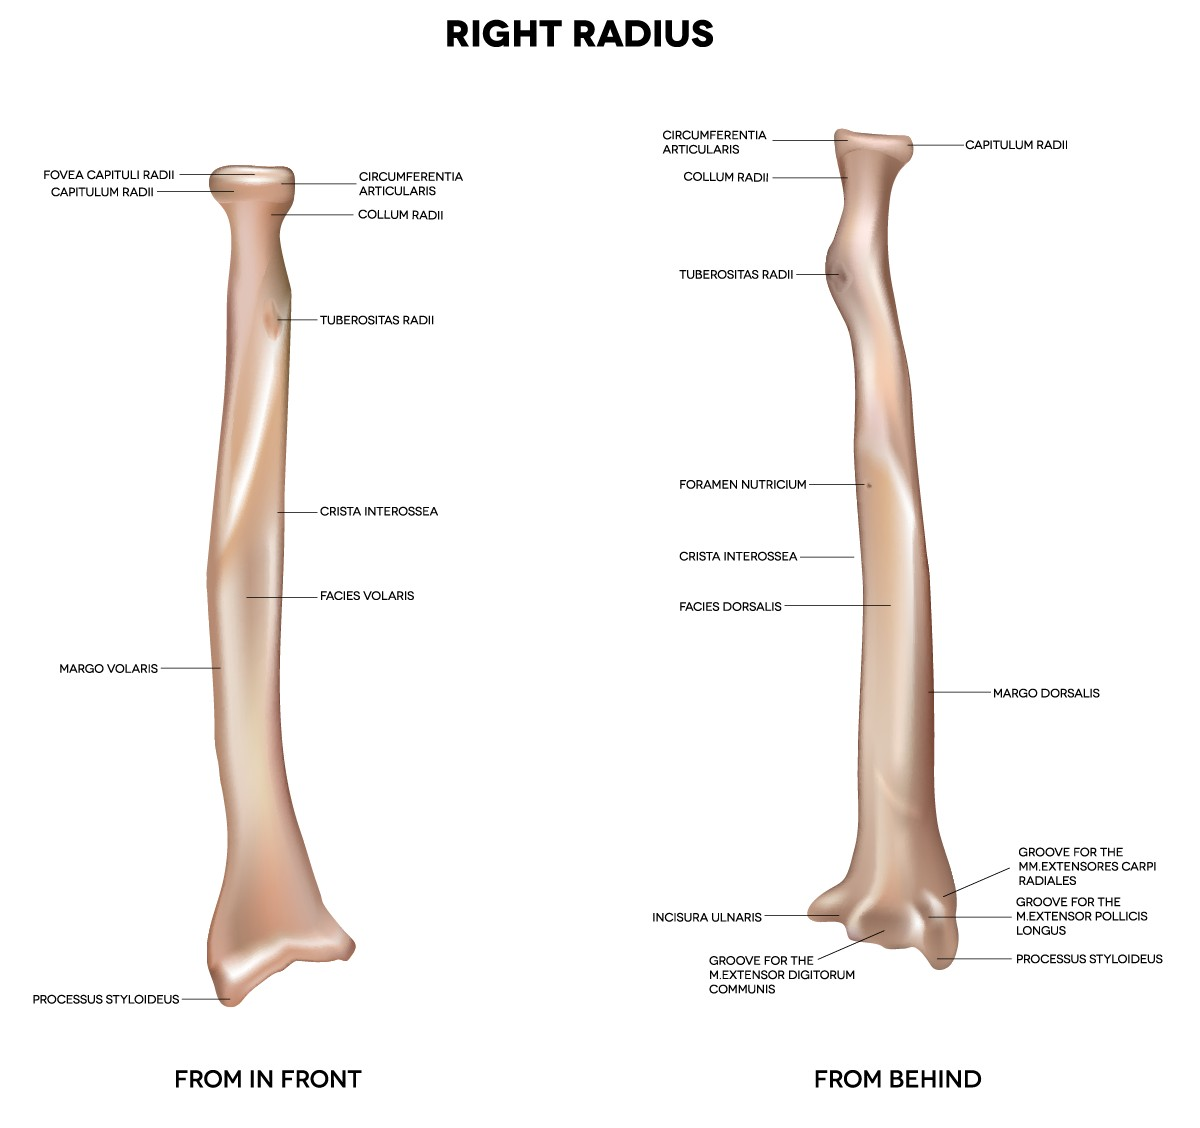 Bodyman Radius Human Right Radius Bone Detailed Medical